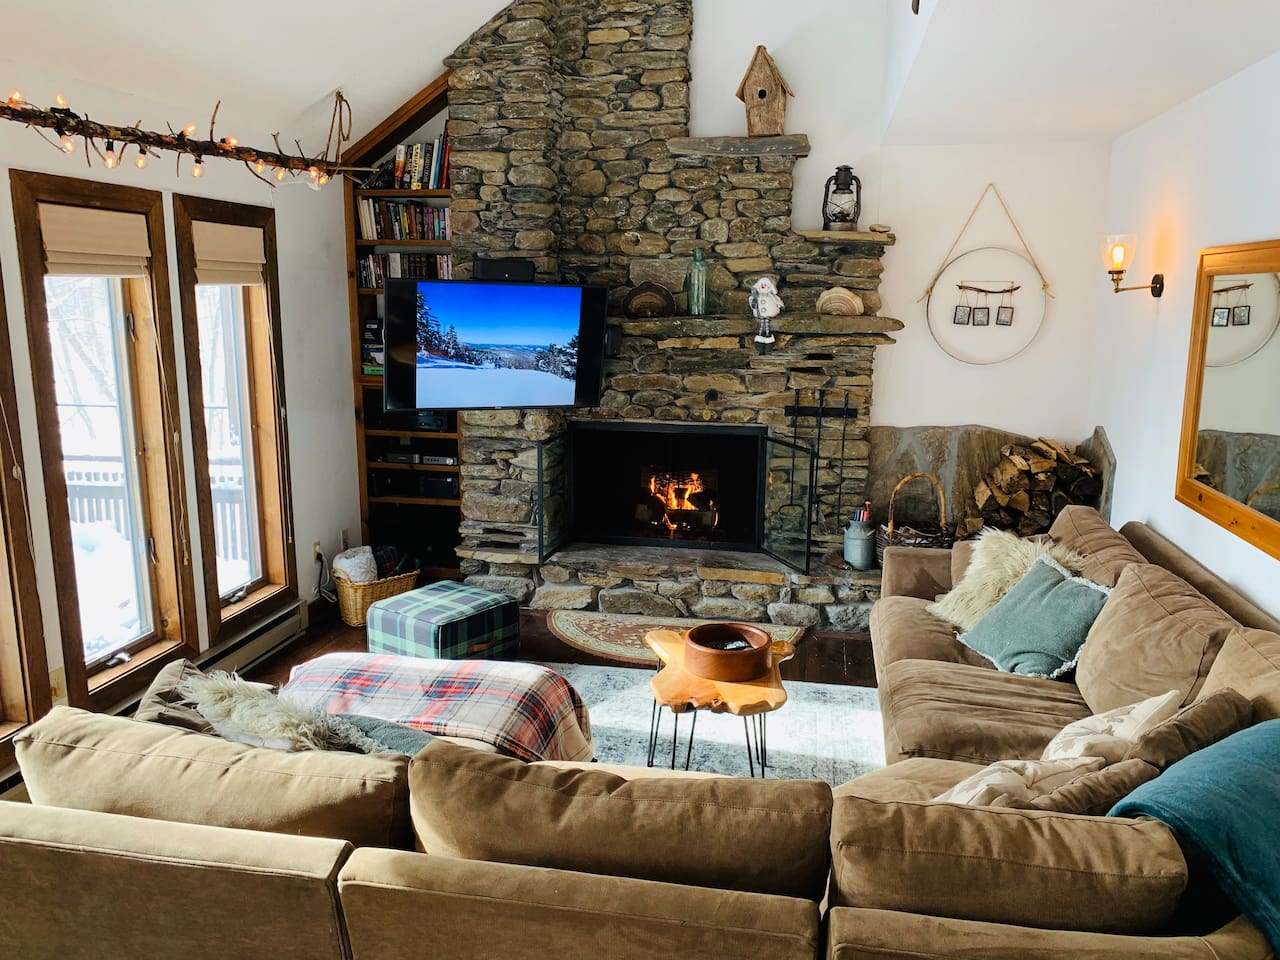 """Our main living room with cozy seating and fieldstone fireplace with views. Guests say: """"As soon as you walk in you feel comfortable. The decor adds a cozy feeling and the little touches just brought it up a notch."""""""